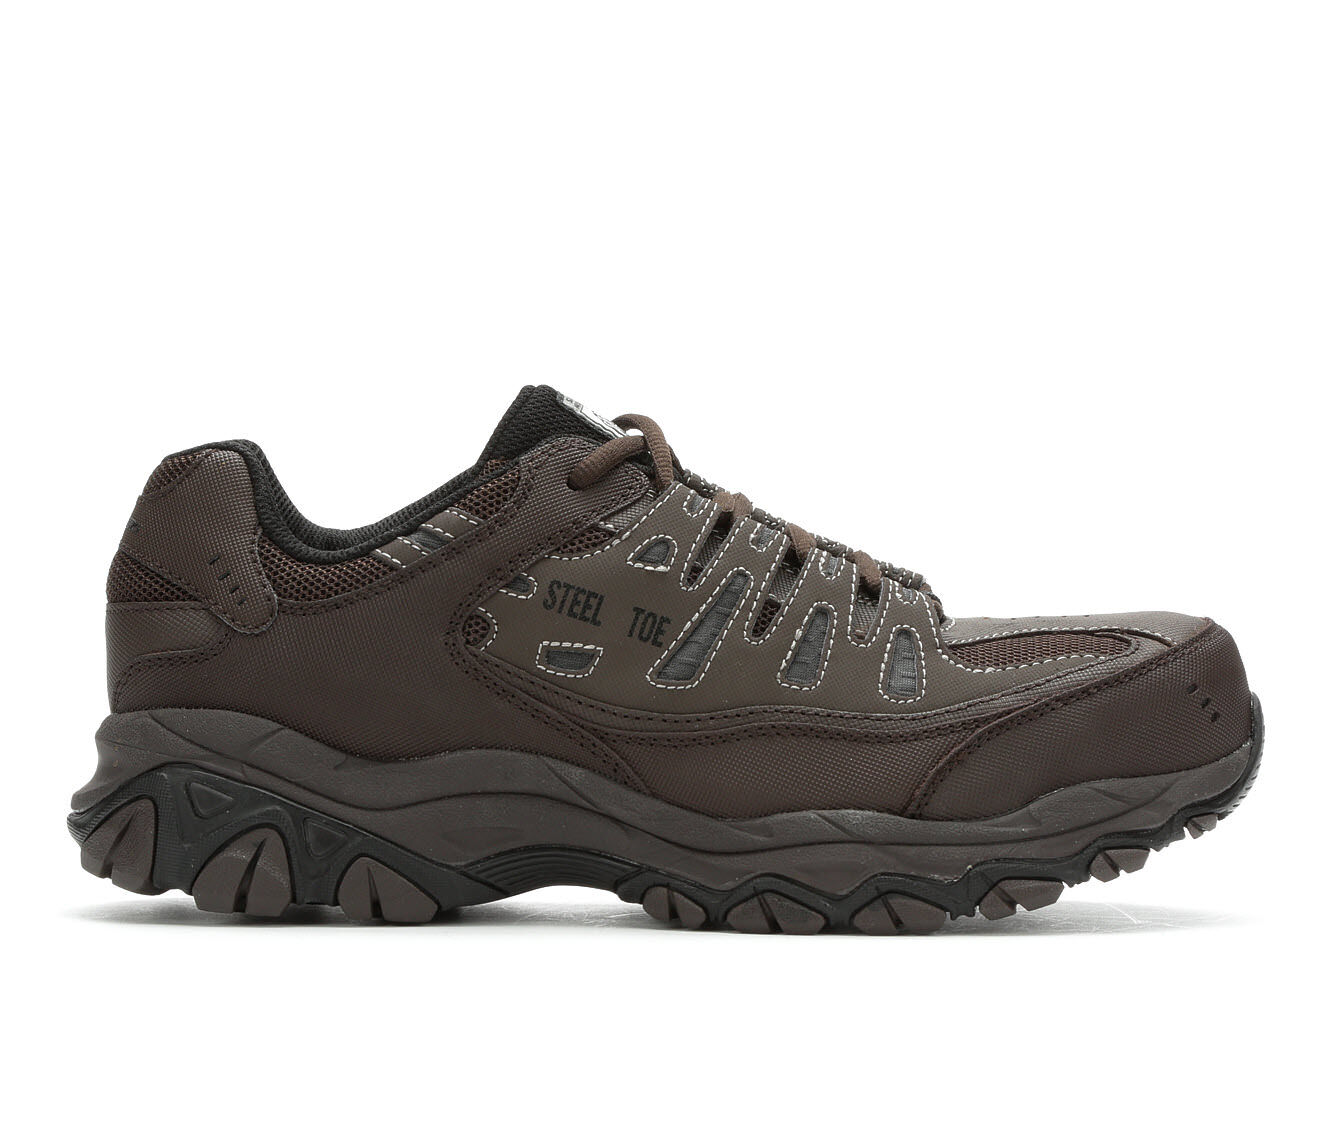 latest style Men's Skechers Work 77055 Cankton Steel Toe Work Shoes Brown